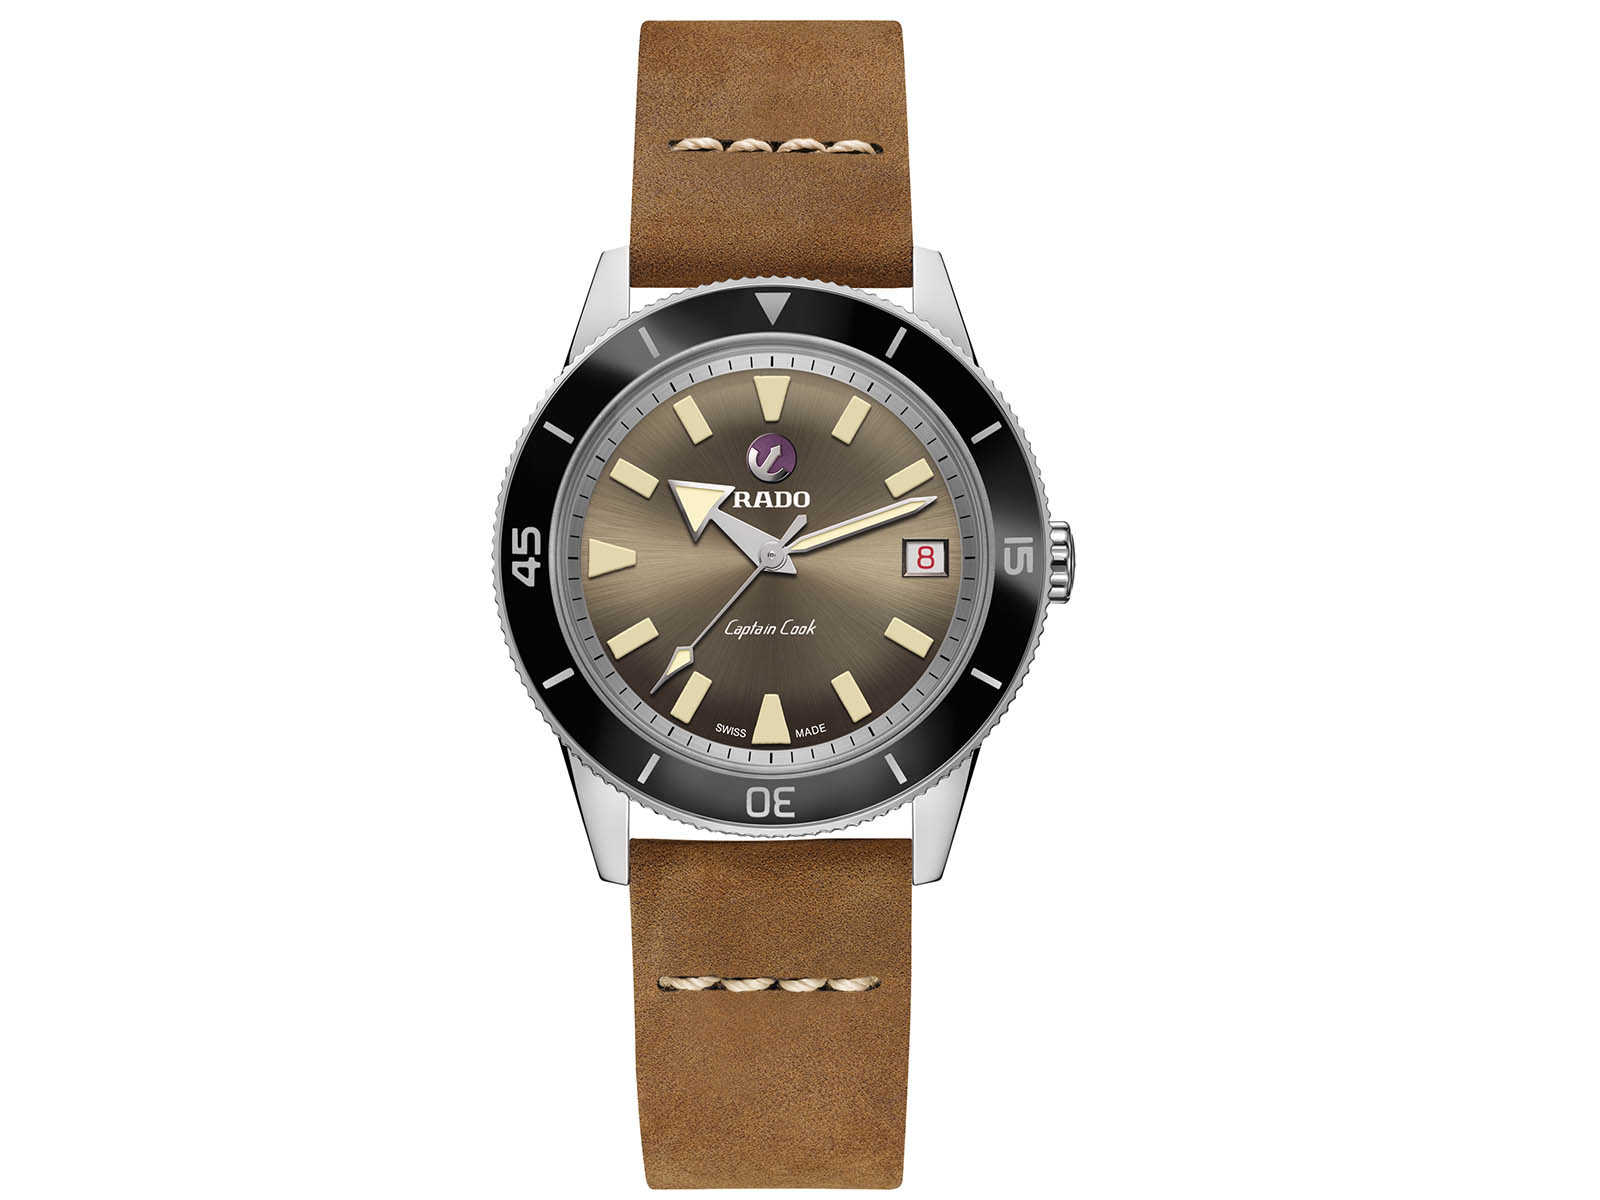 01-763-0500-3-131-rado-captain-cook-automatic-limited-edition-3.jpg